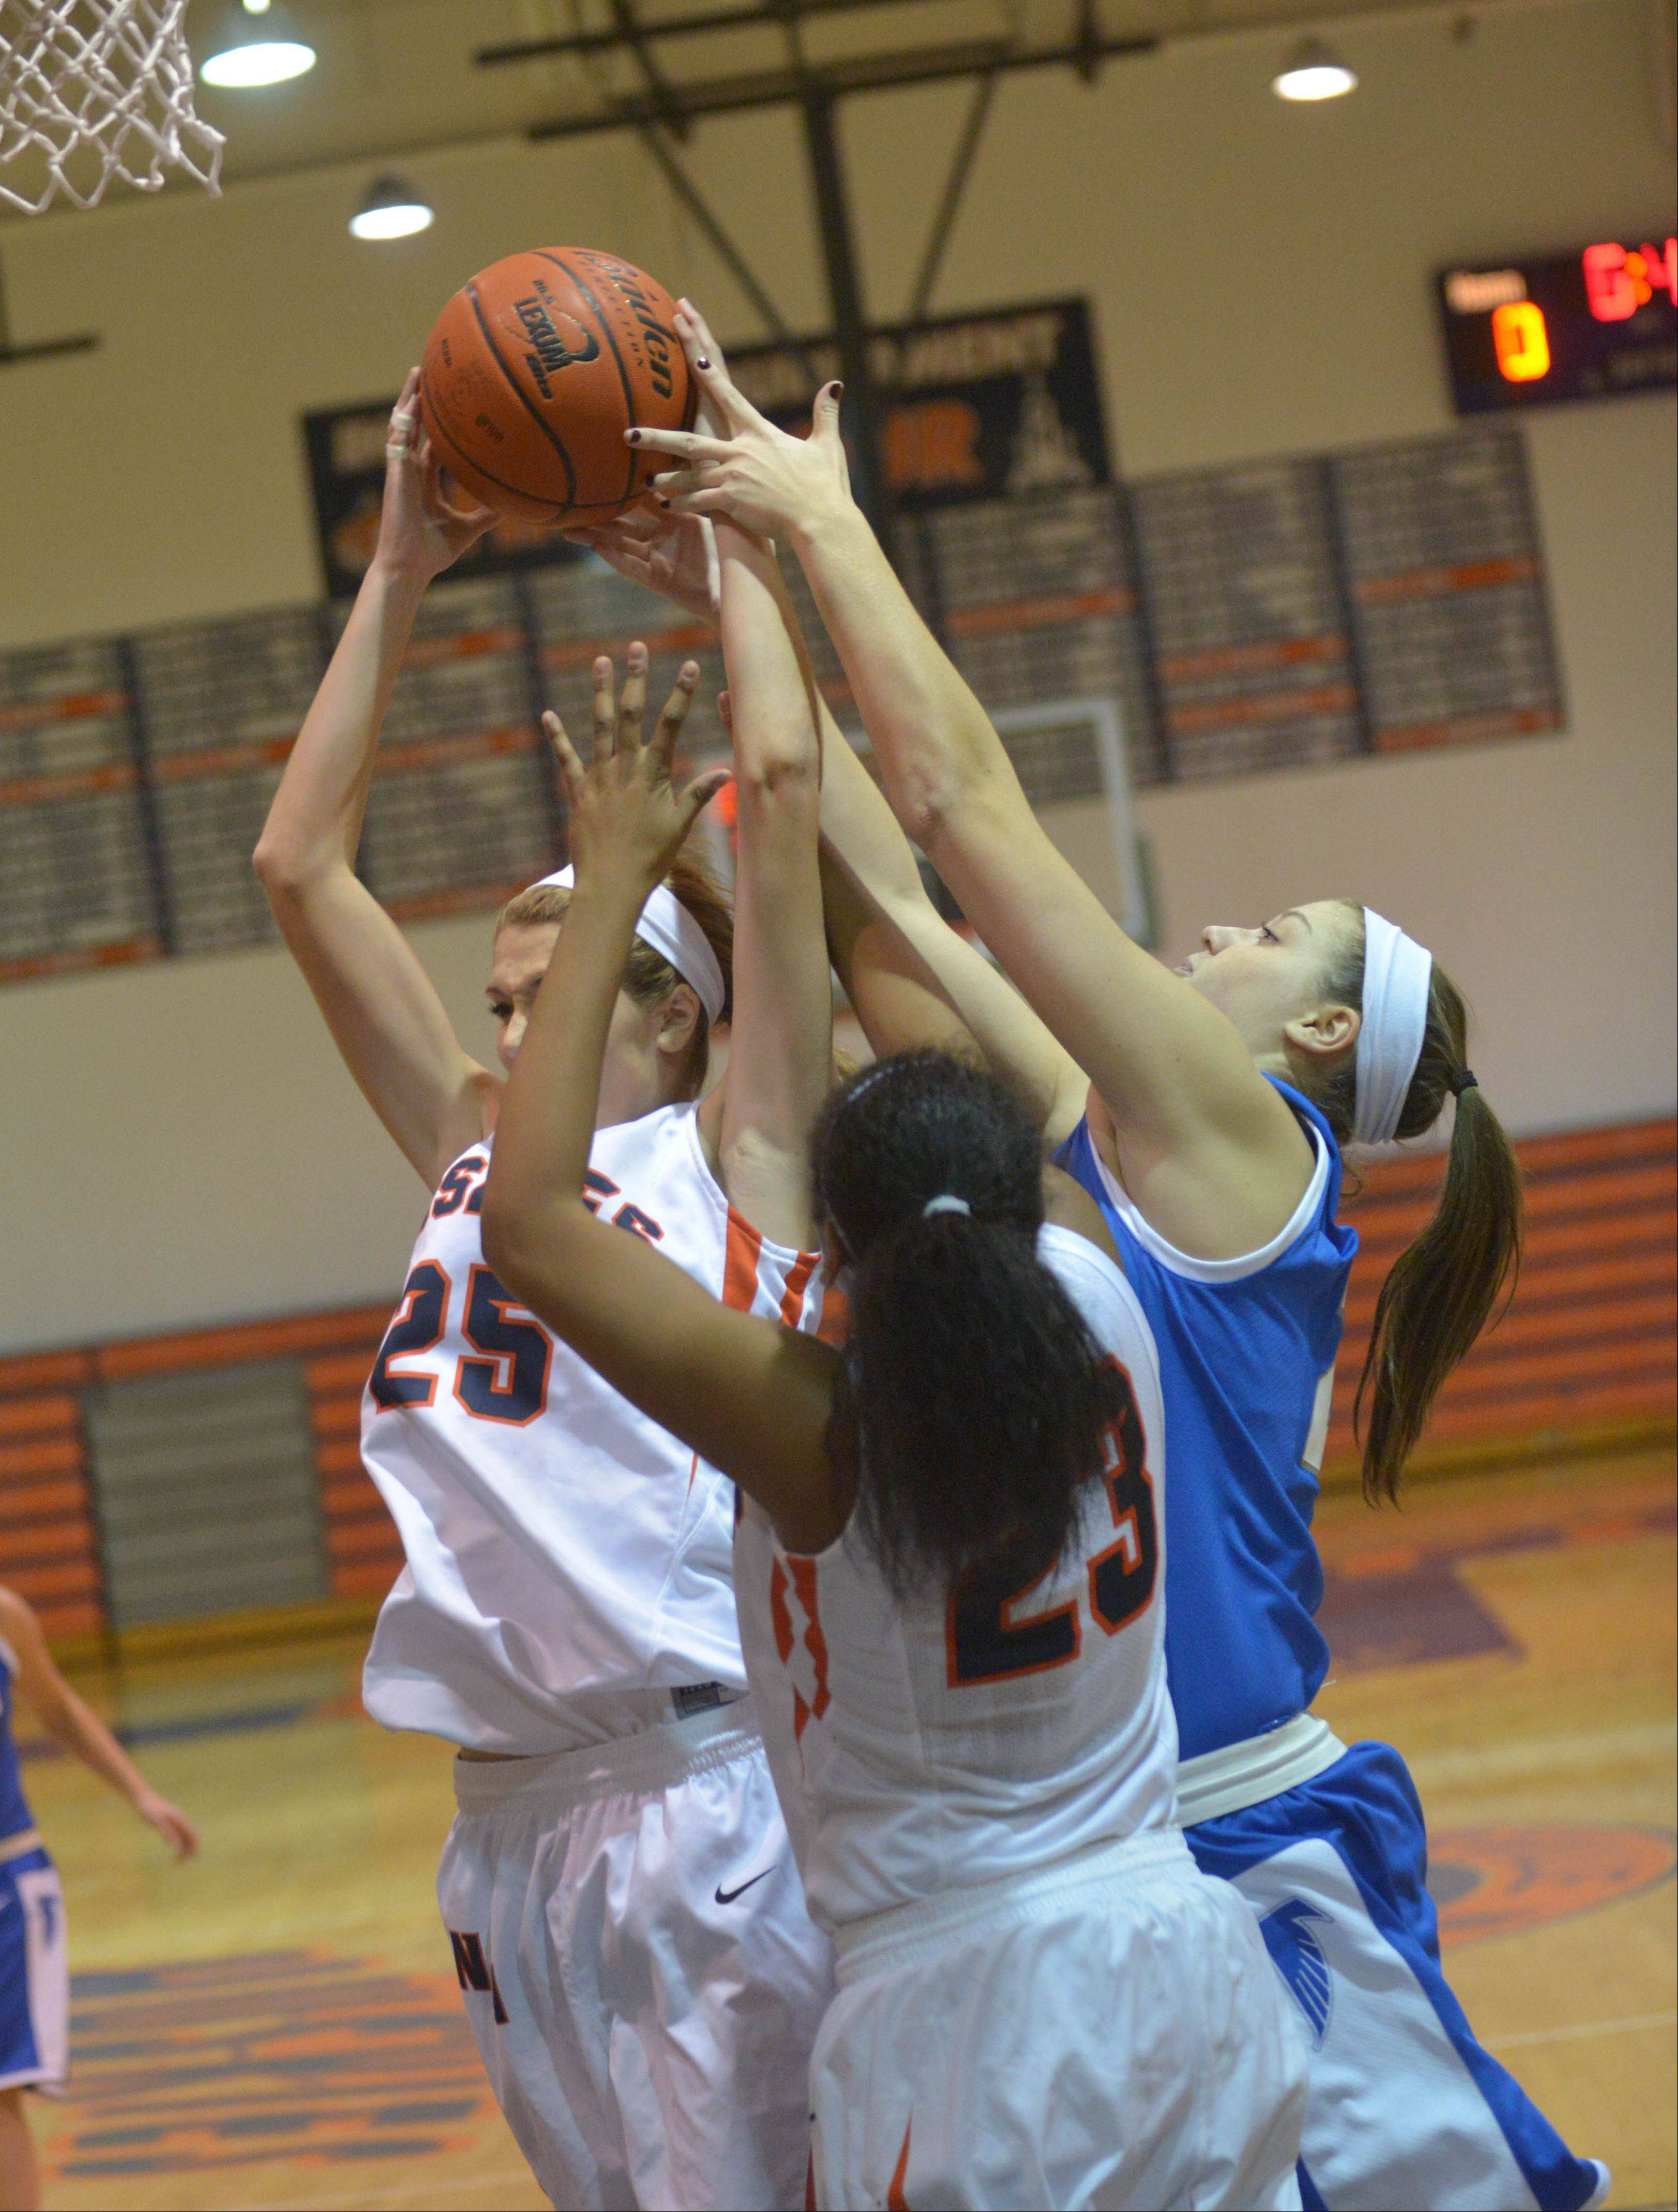 Kayla Sharples of Napervile North,left, and Chrissy Baird of Wheaton North go for a rebound.